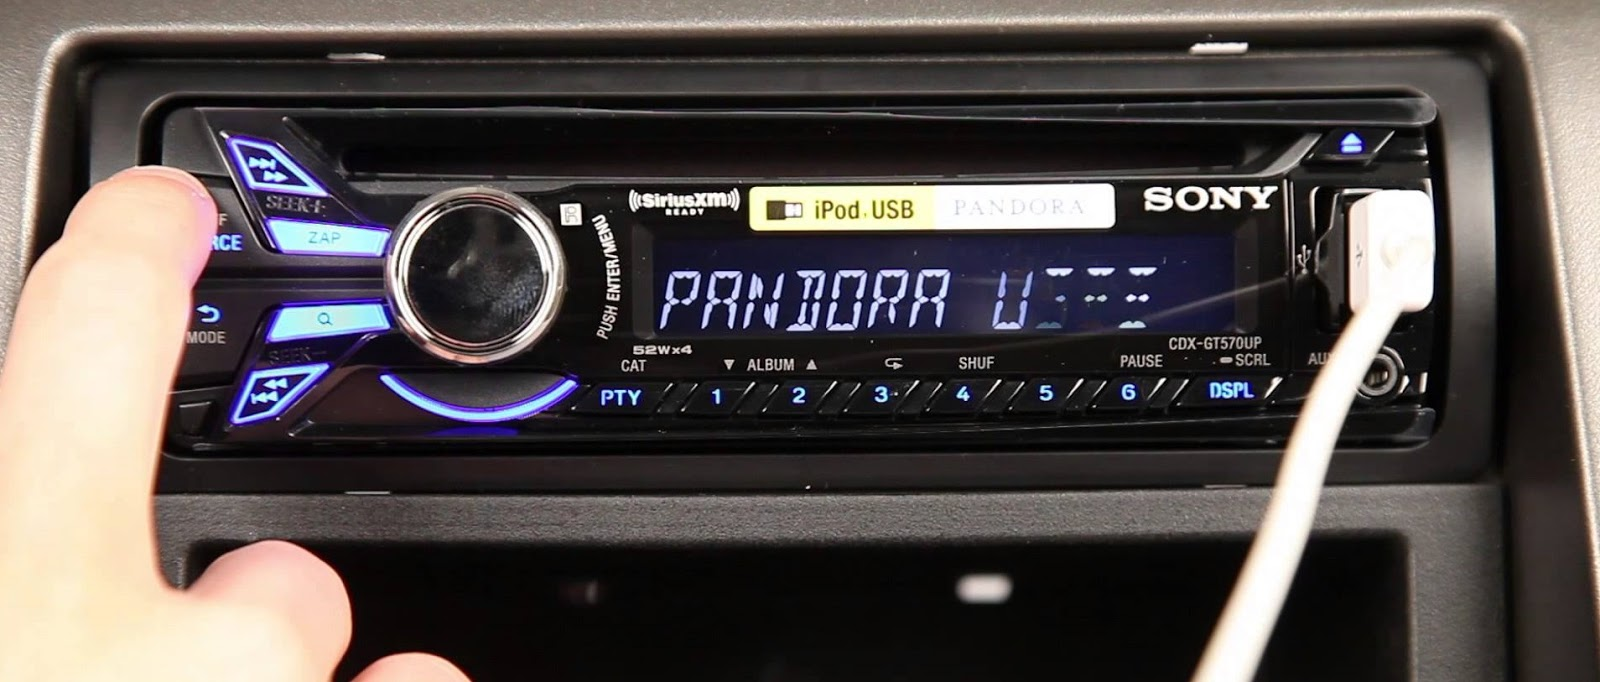 how to fix sony car stereo usb not supported problem how. Black Bedroom Furniture Sets. Home Design Ideas